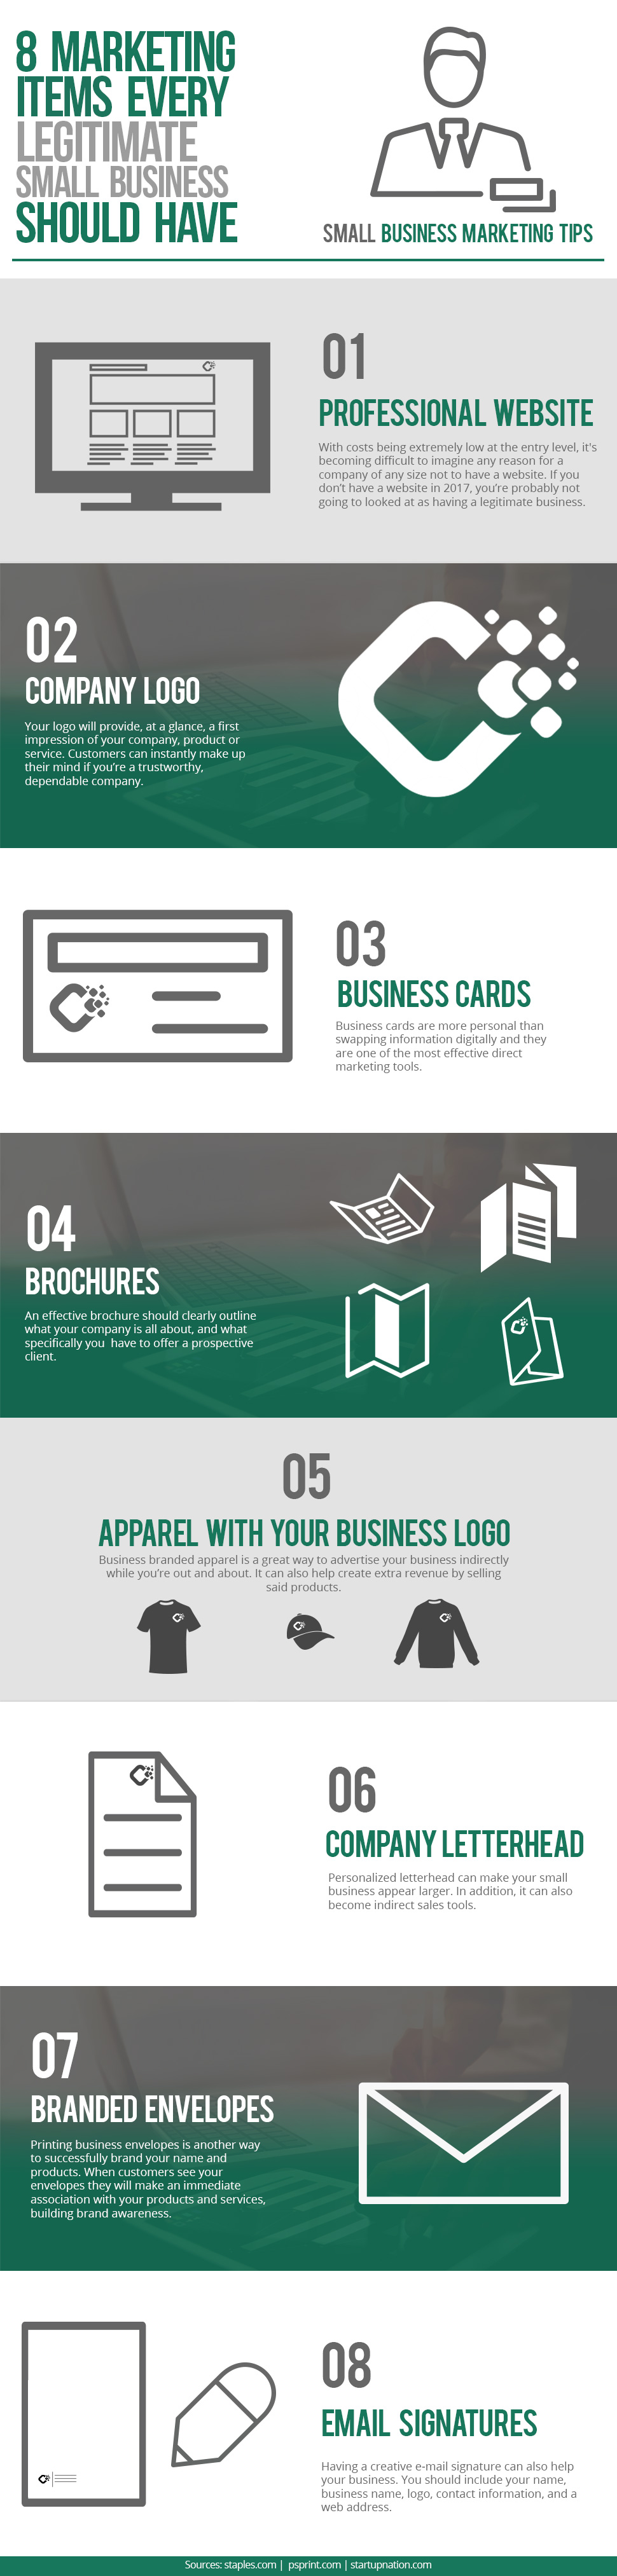 8 Marketing Items that Are Key to Building Positive Impressions of Your Company - Infographic